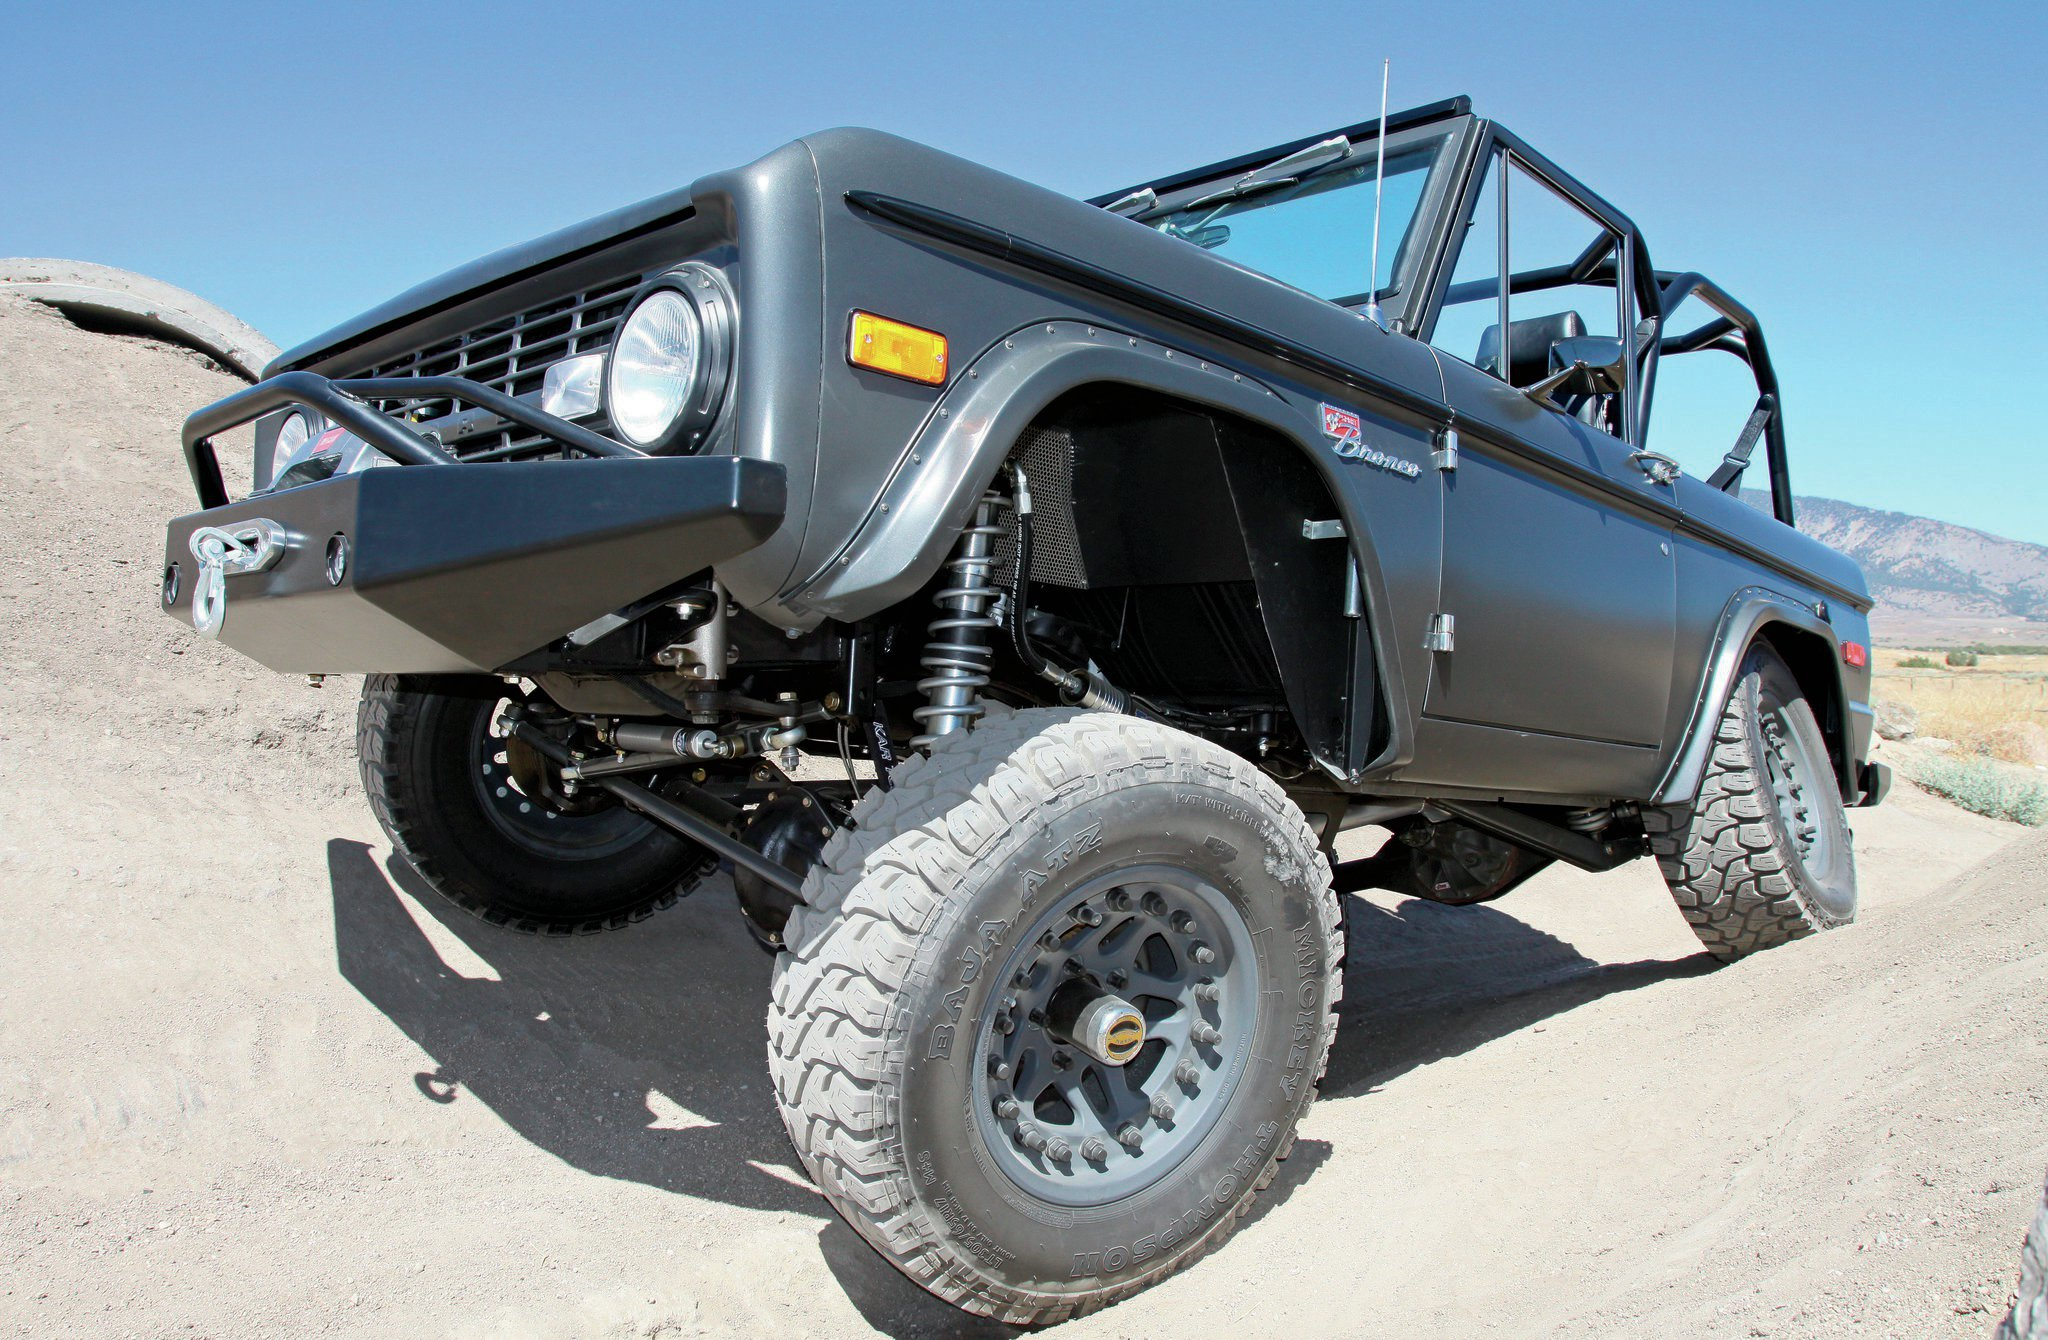 The custom-built suspension is designed to work above and beyond the off-the-shelf kits commonly sold for the '66-77 Early Bronco. The trickery isn't fully apparent at a casual glance. You've got to crawl underneath to really understand what's going on.